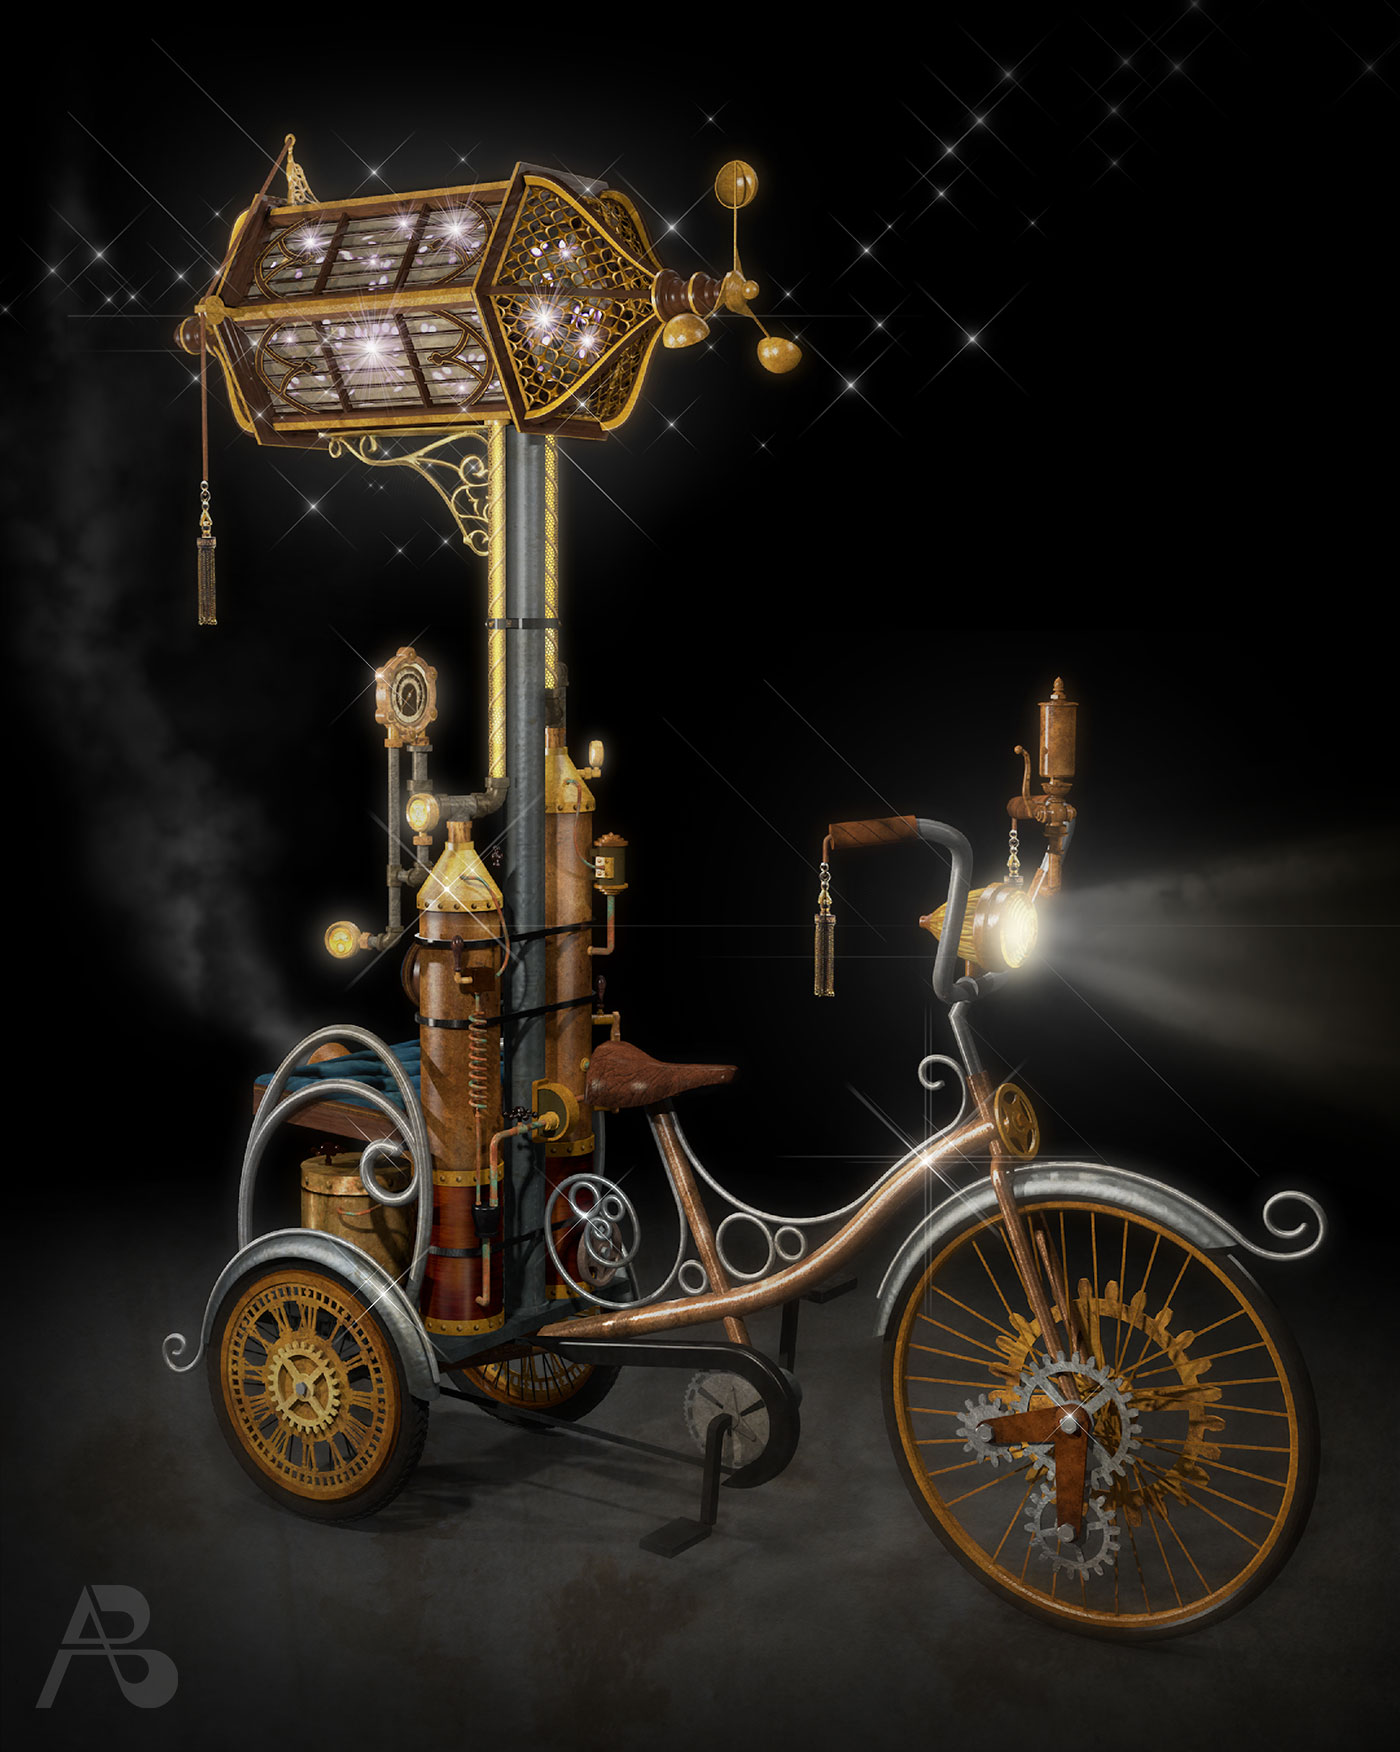 andy-broomell-chronocycle-front-digital-rendering-vectorworks-photoshop-firefiles-steampunk-bicycle-machine.jpg